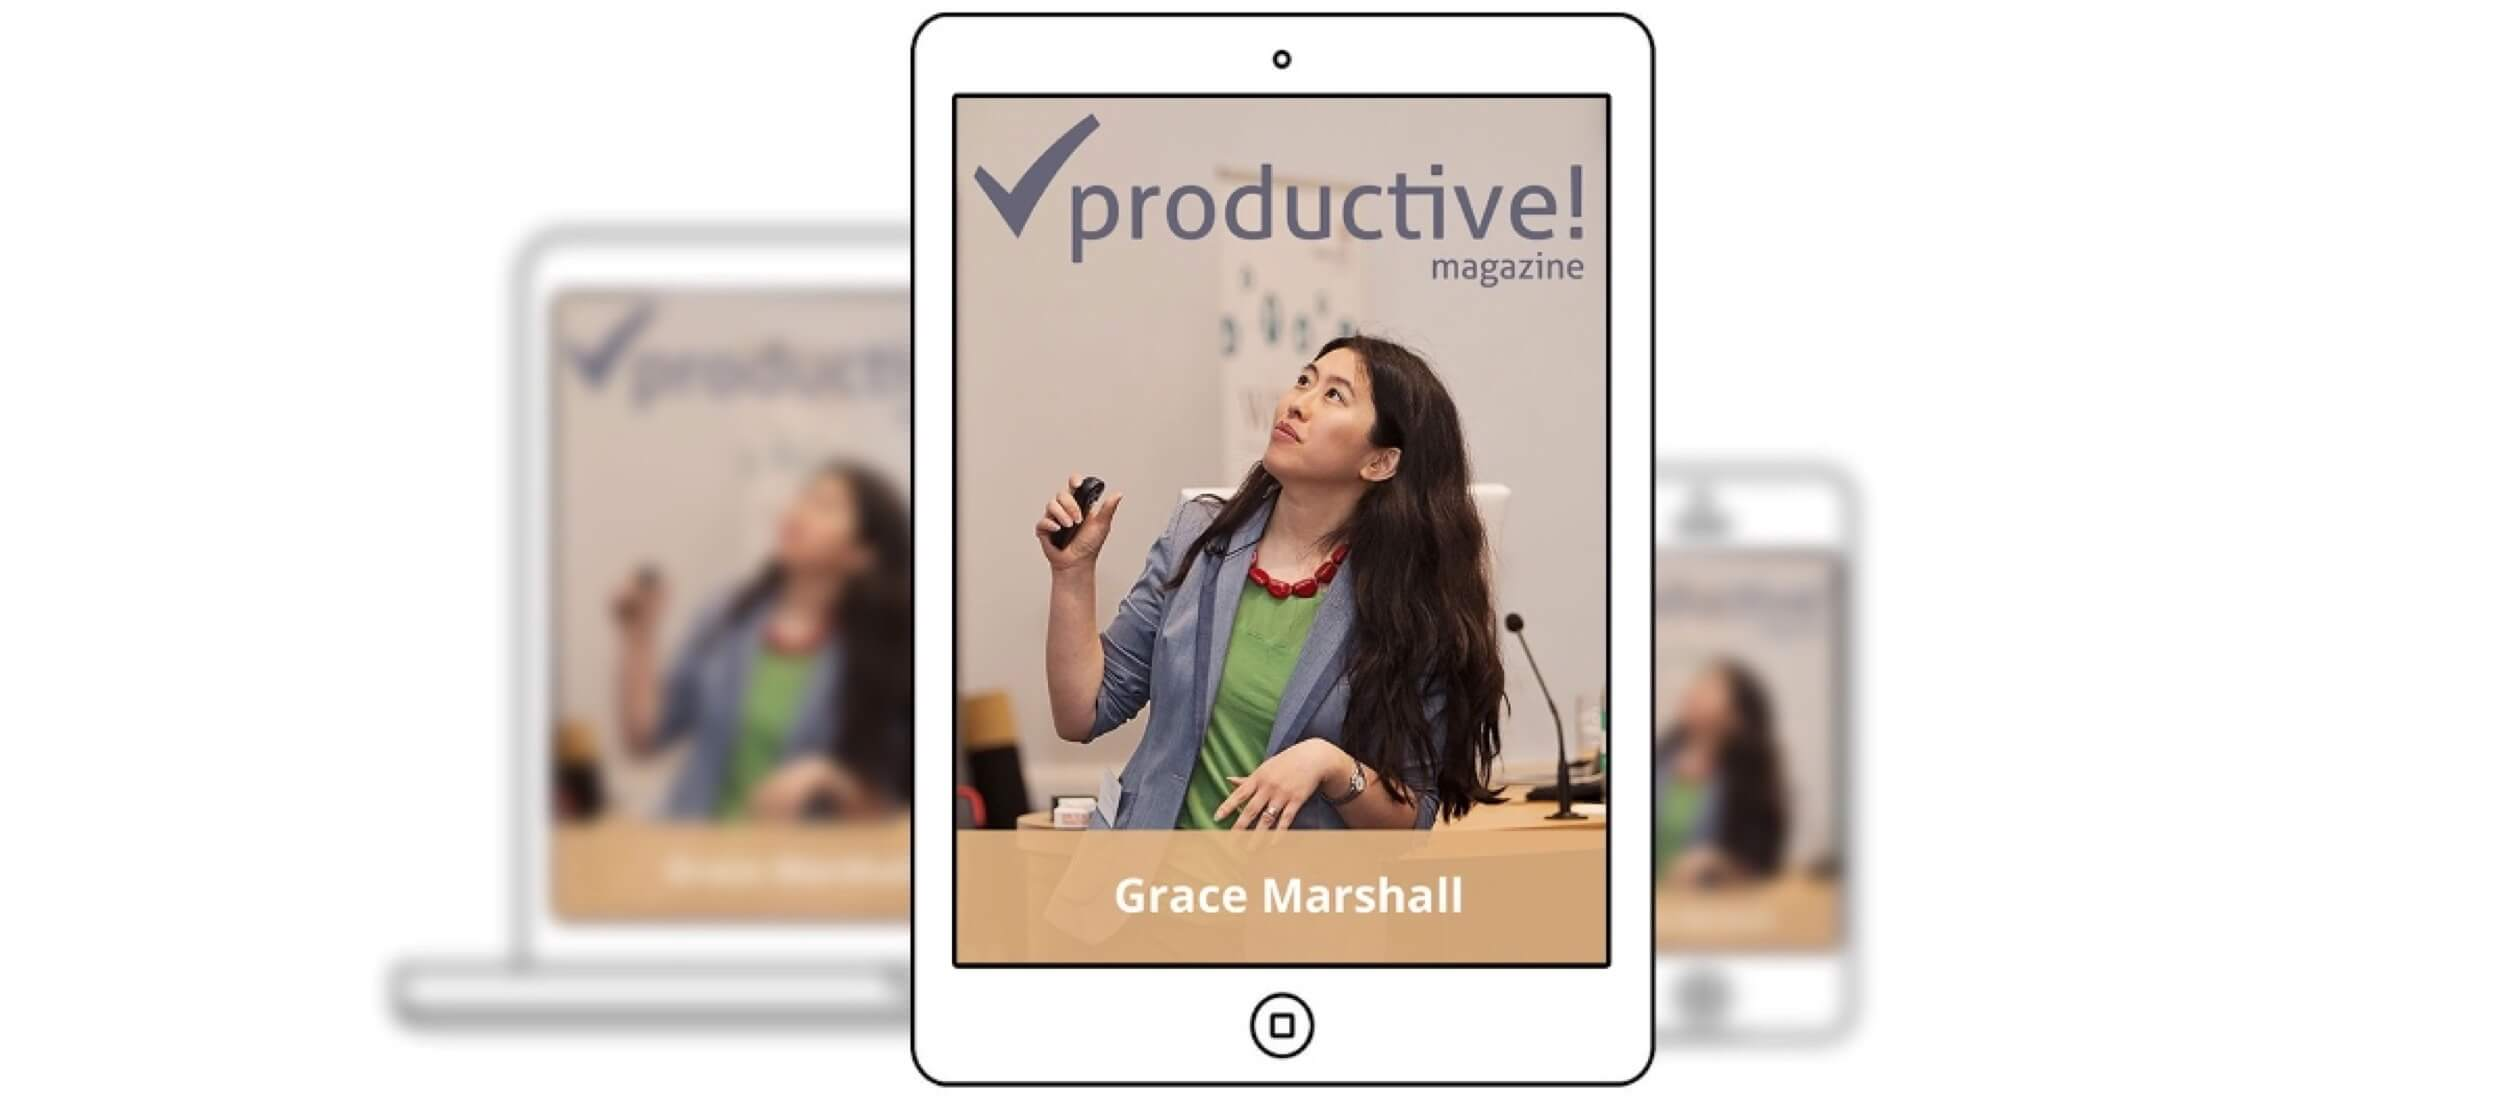 Workflow optimization - intro to Productive! Magazine No.31 with Grace Marshall